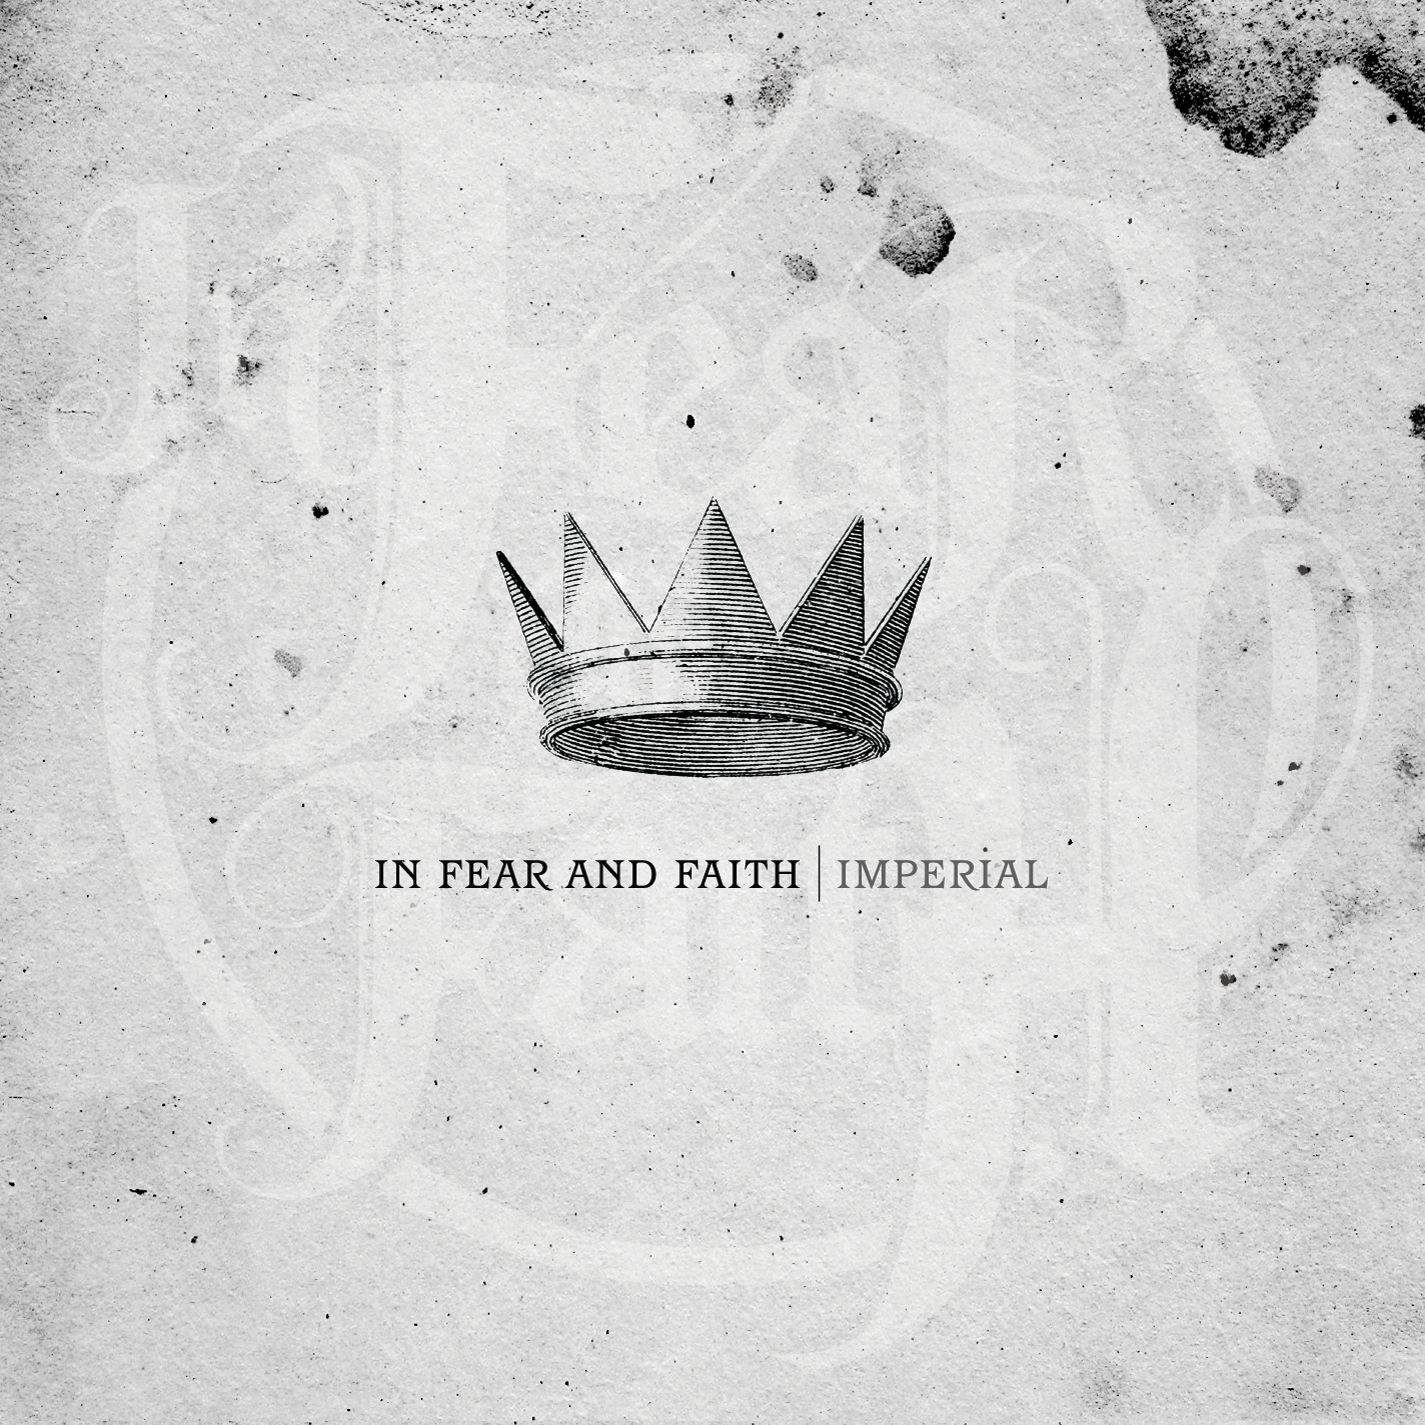 In Fear and Faith - Imperial (2010)